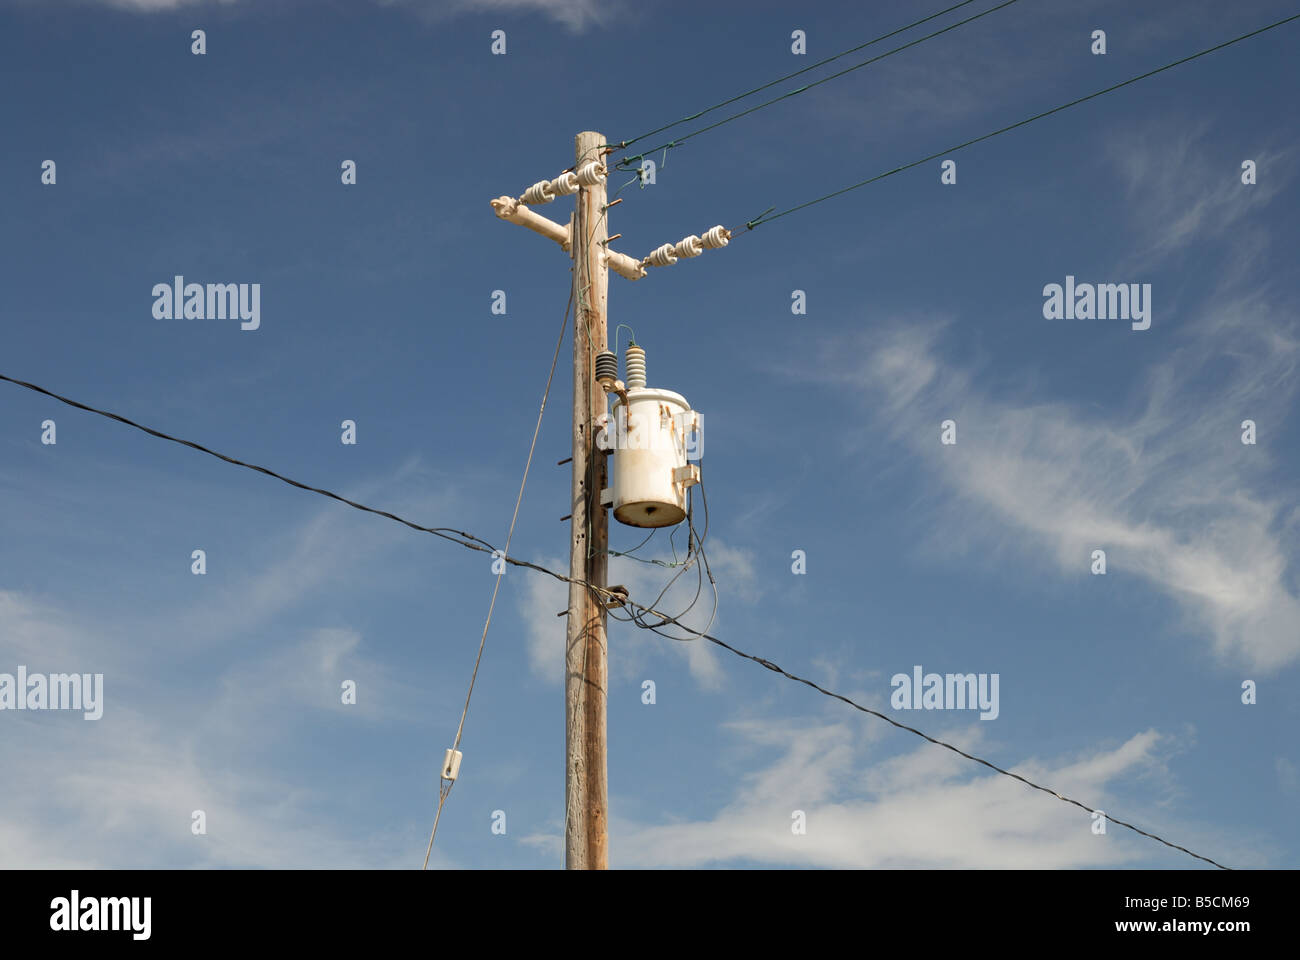 Transformer Electric Stock Photos Free Photography Meter Messy Electrical Installation On Wooden Pole With Wiring And Insolators Image